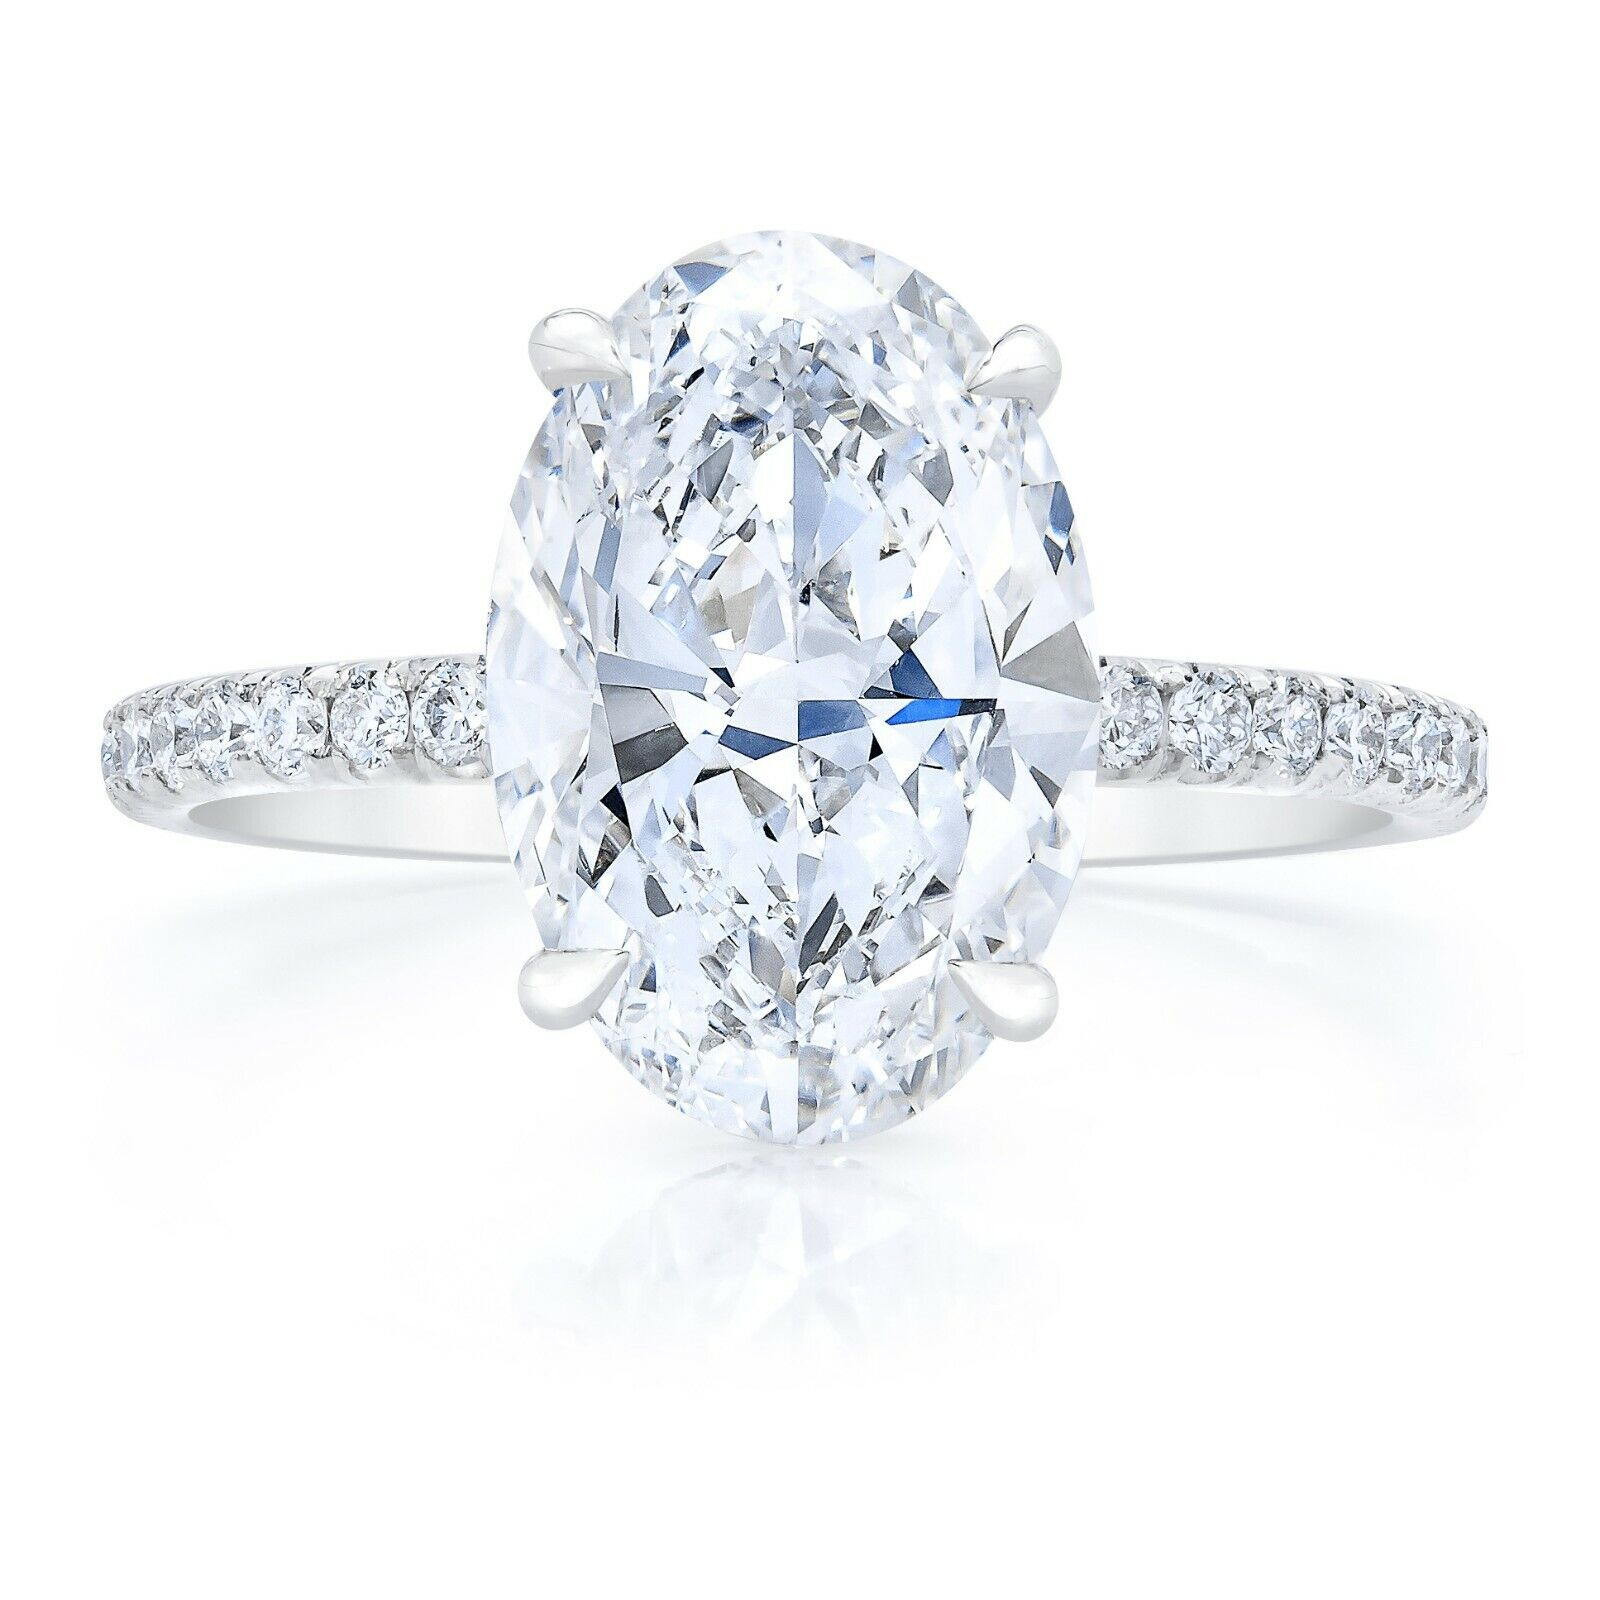 Stunning 2.20 Ct Oval Brilliant Cut Diamond Engagement Ring F, VS2 GIA Platinum